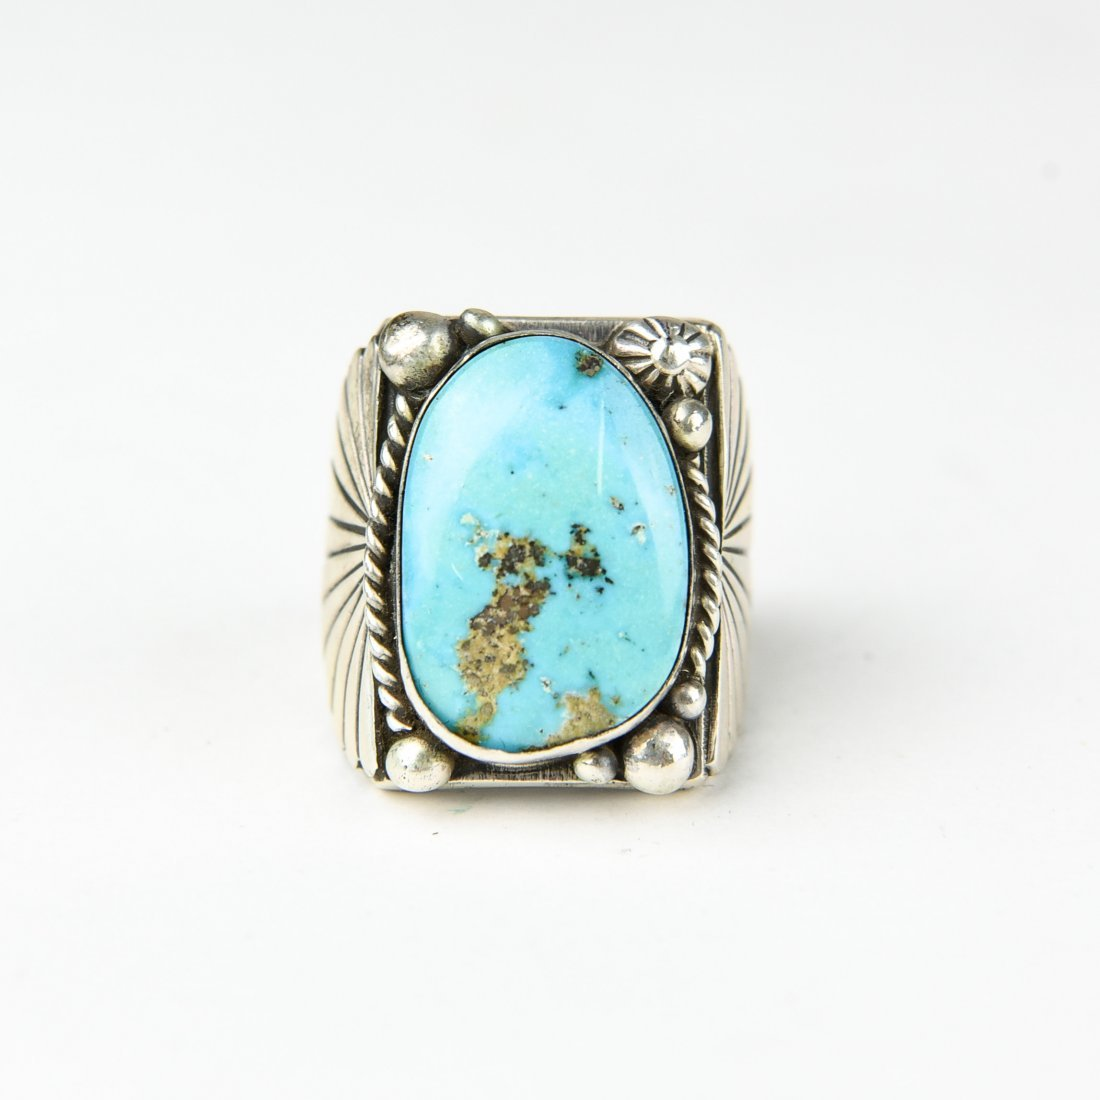 HEAVY STERLING AND TURQUOISE RING